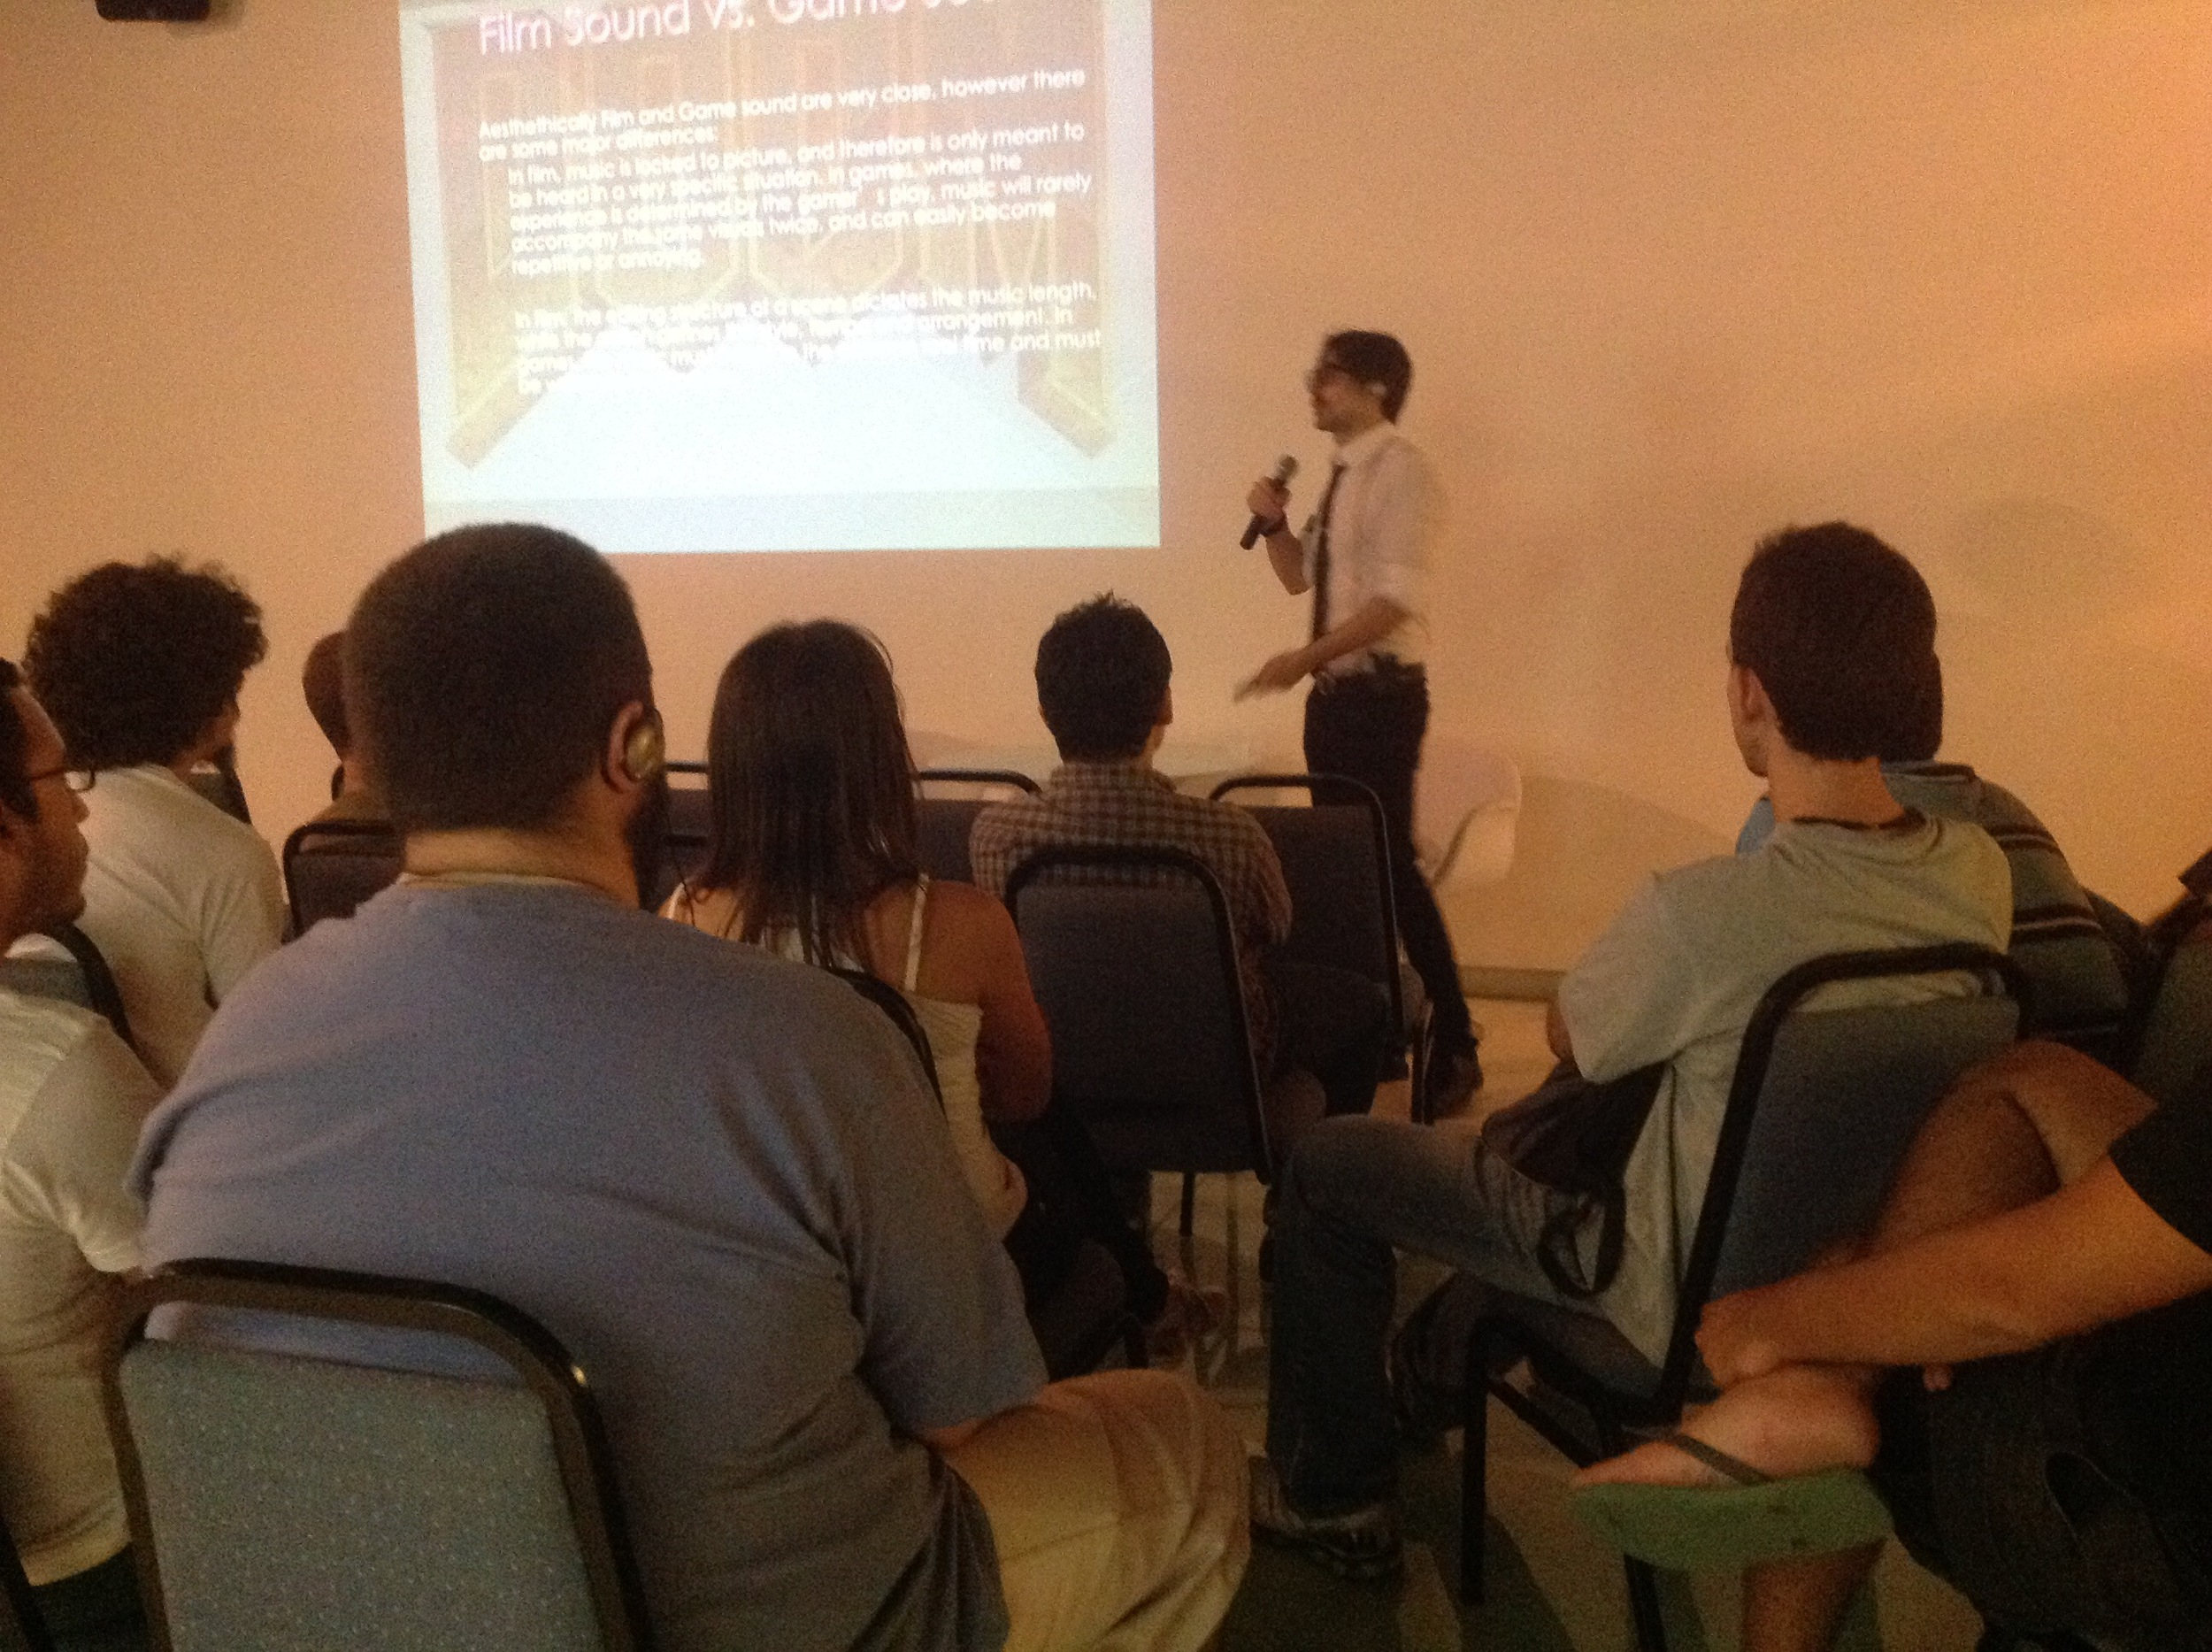 Lecturing on Game Audio in Brazil